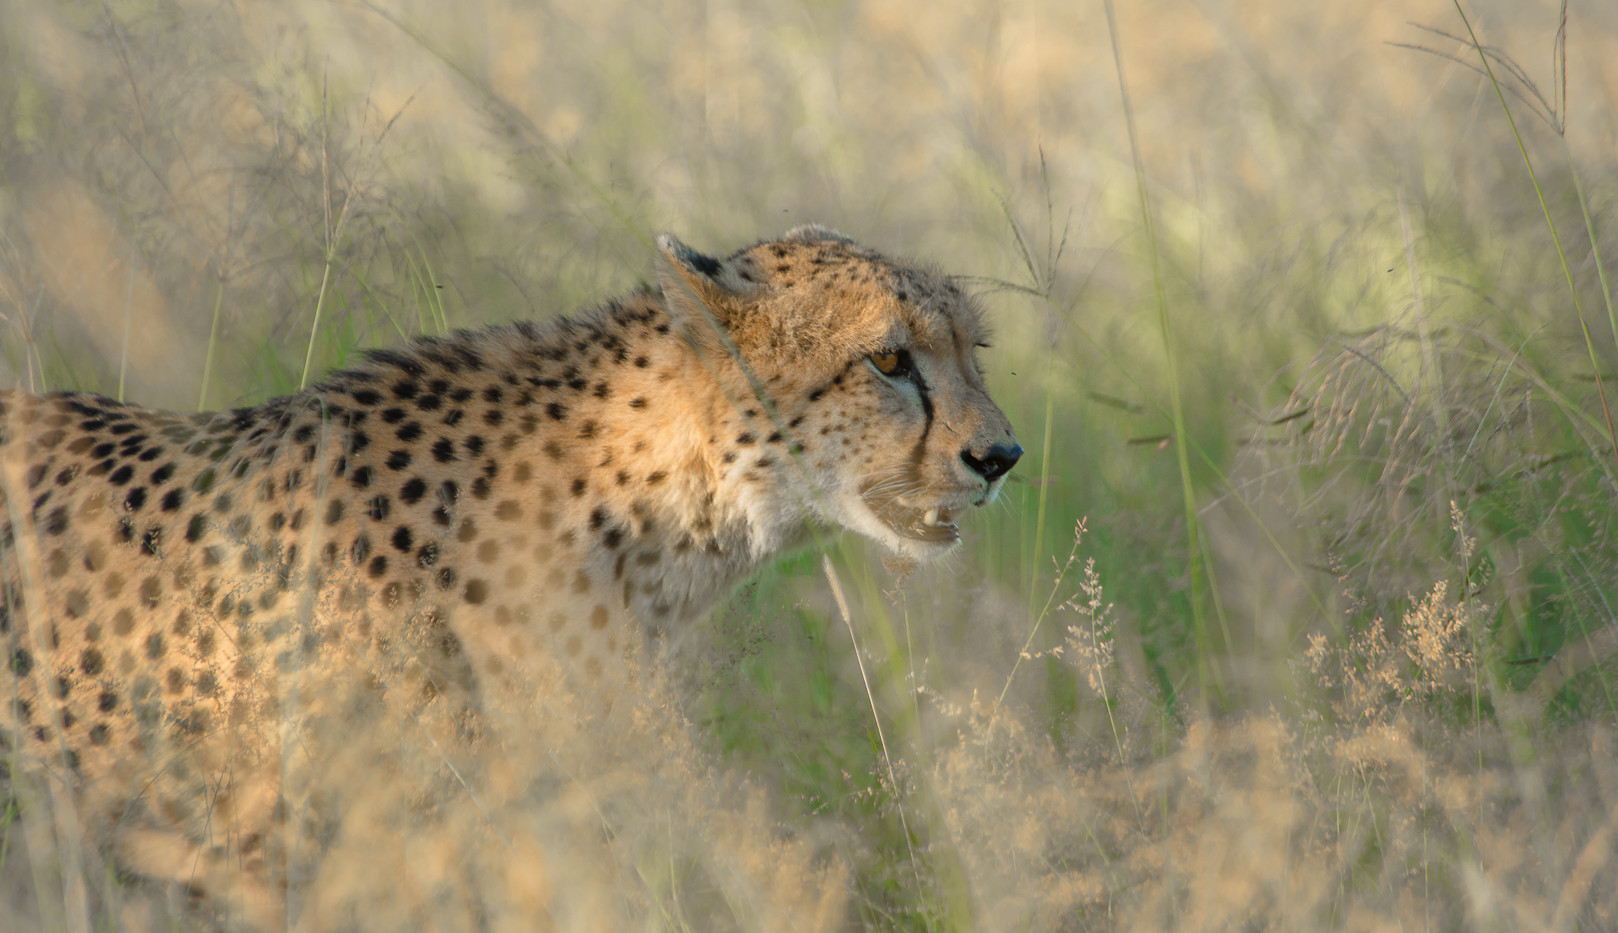 Cheetah walking through the grasslands